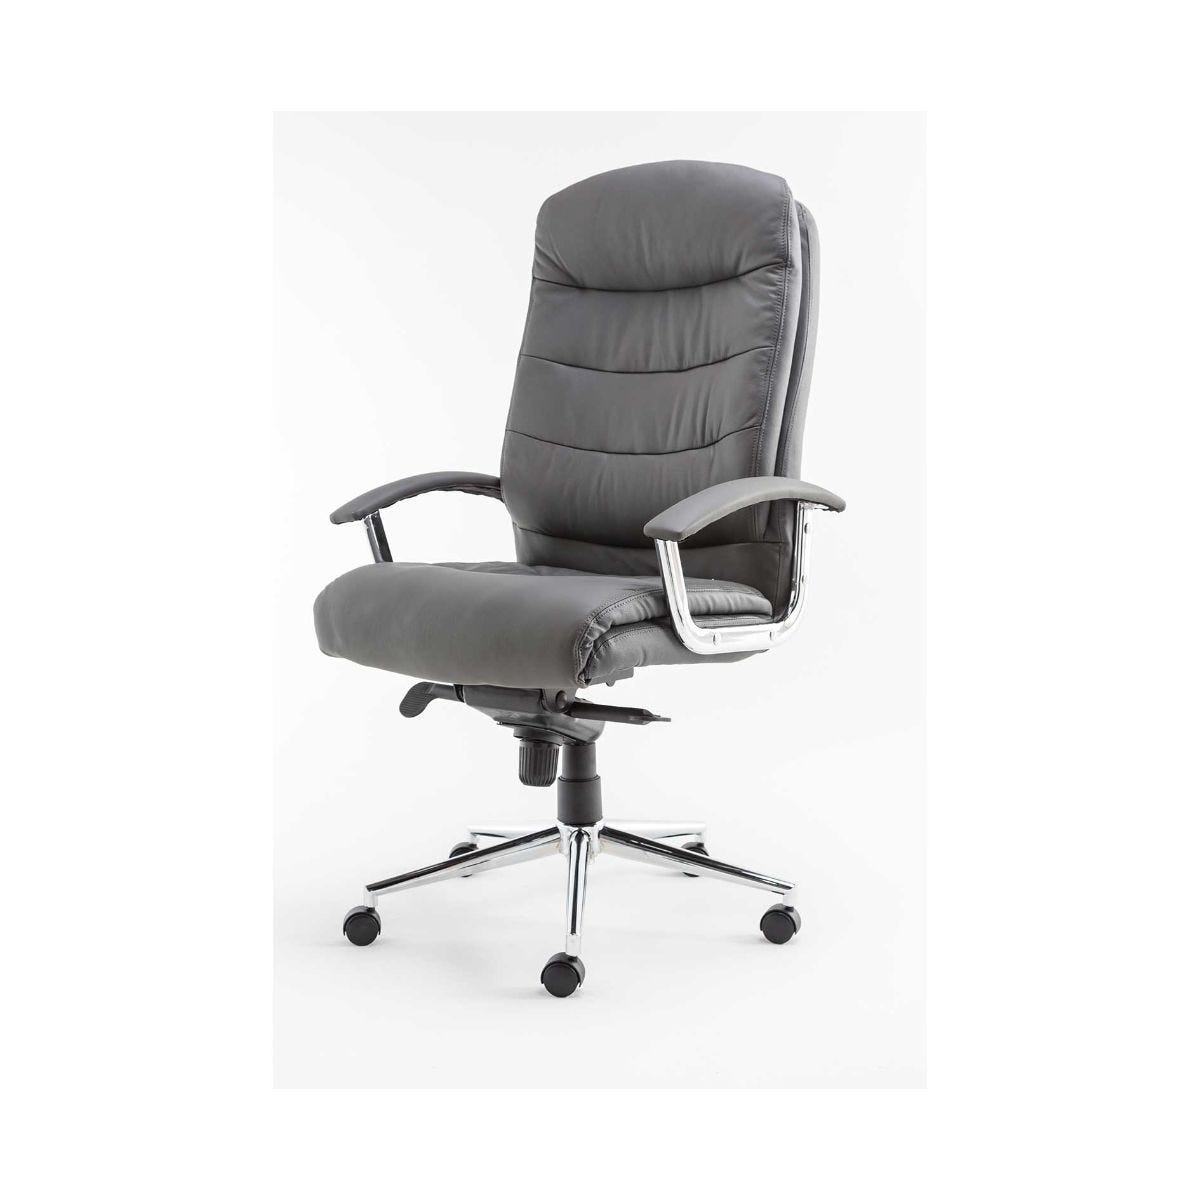 Alphason Empire Padded Leather Executive Office Chair, Grey